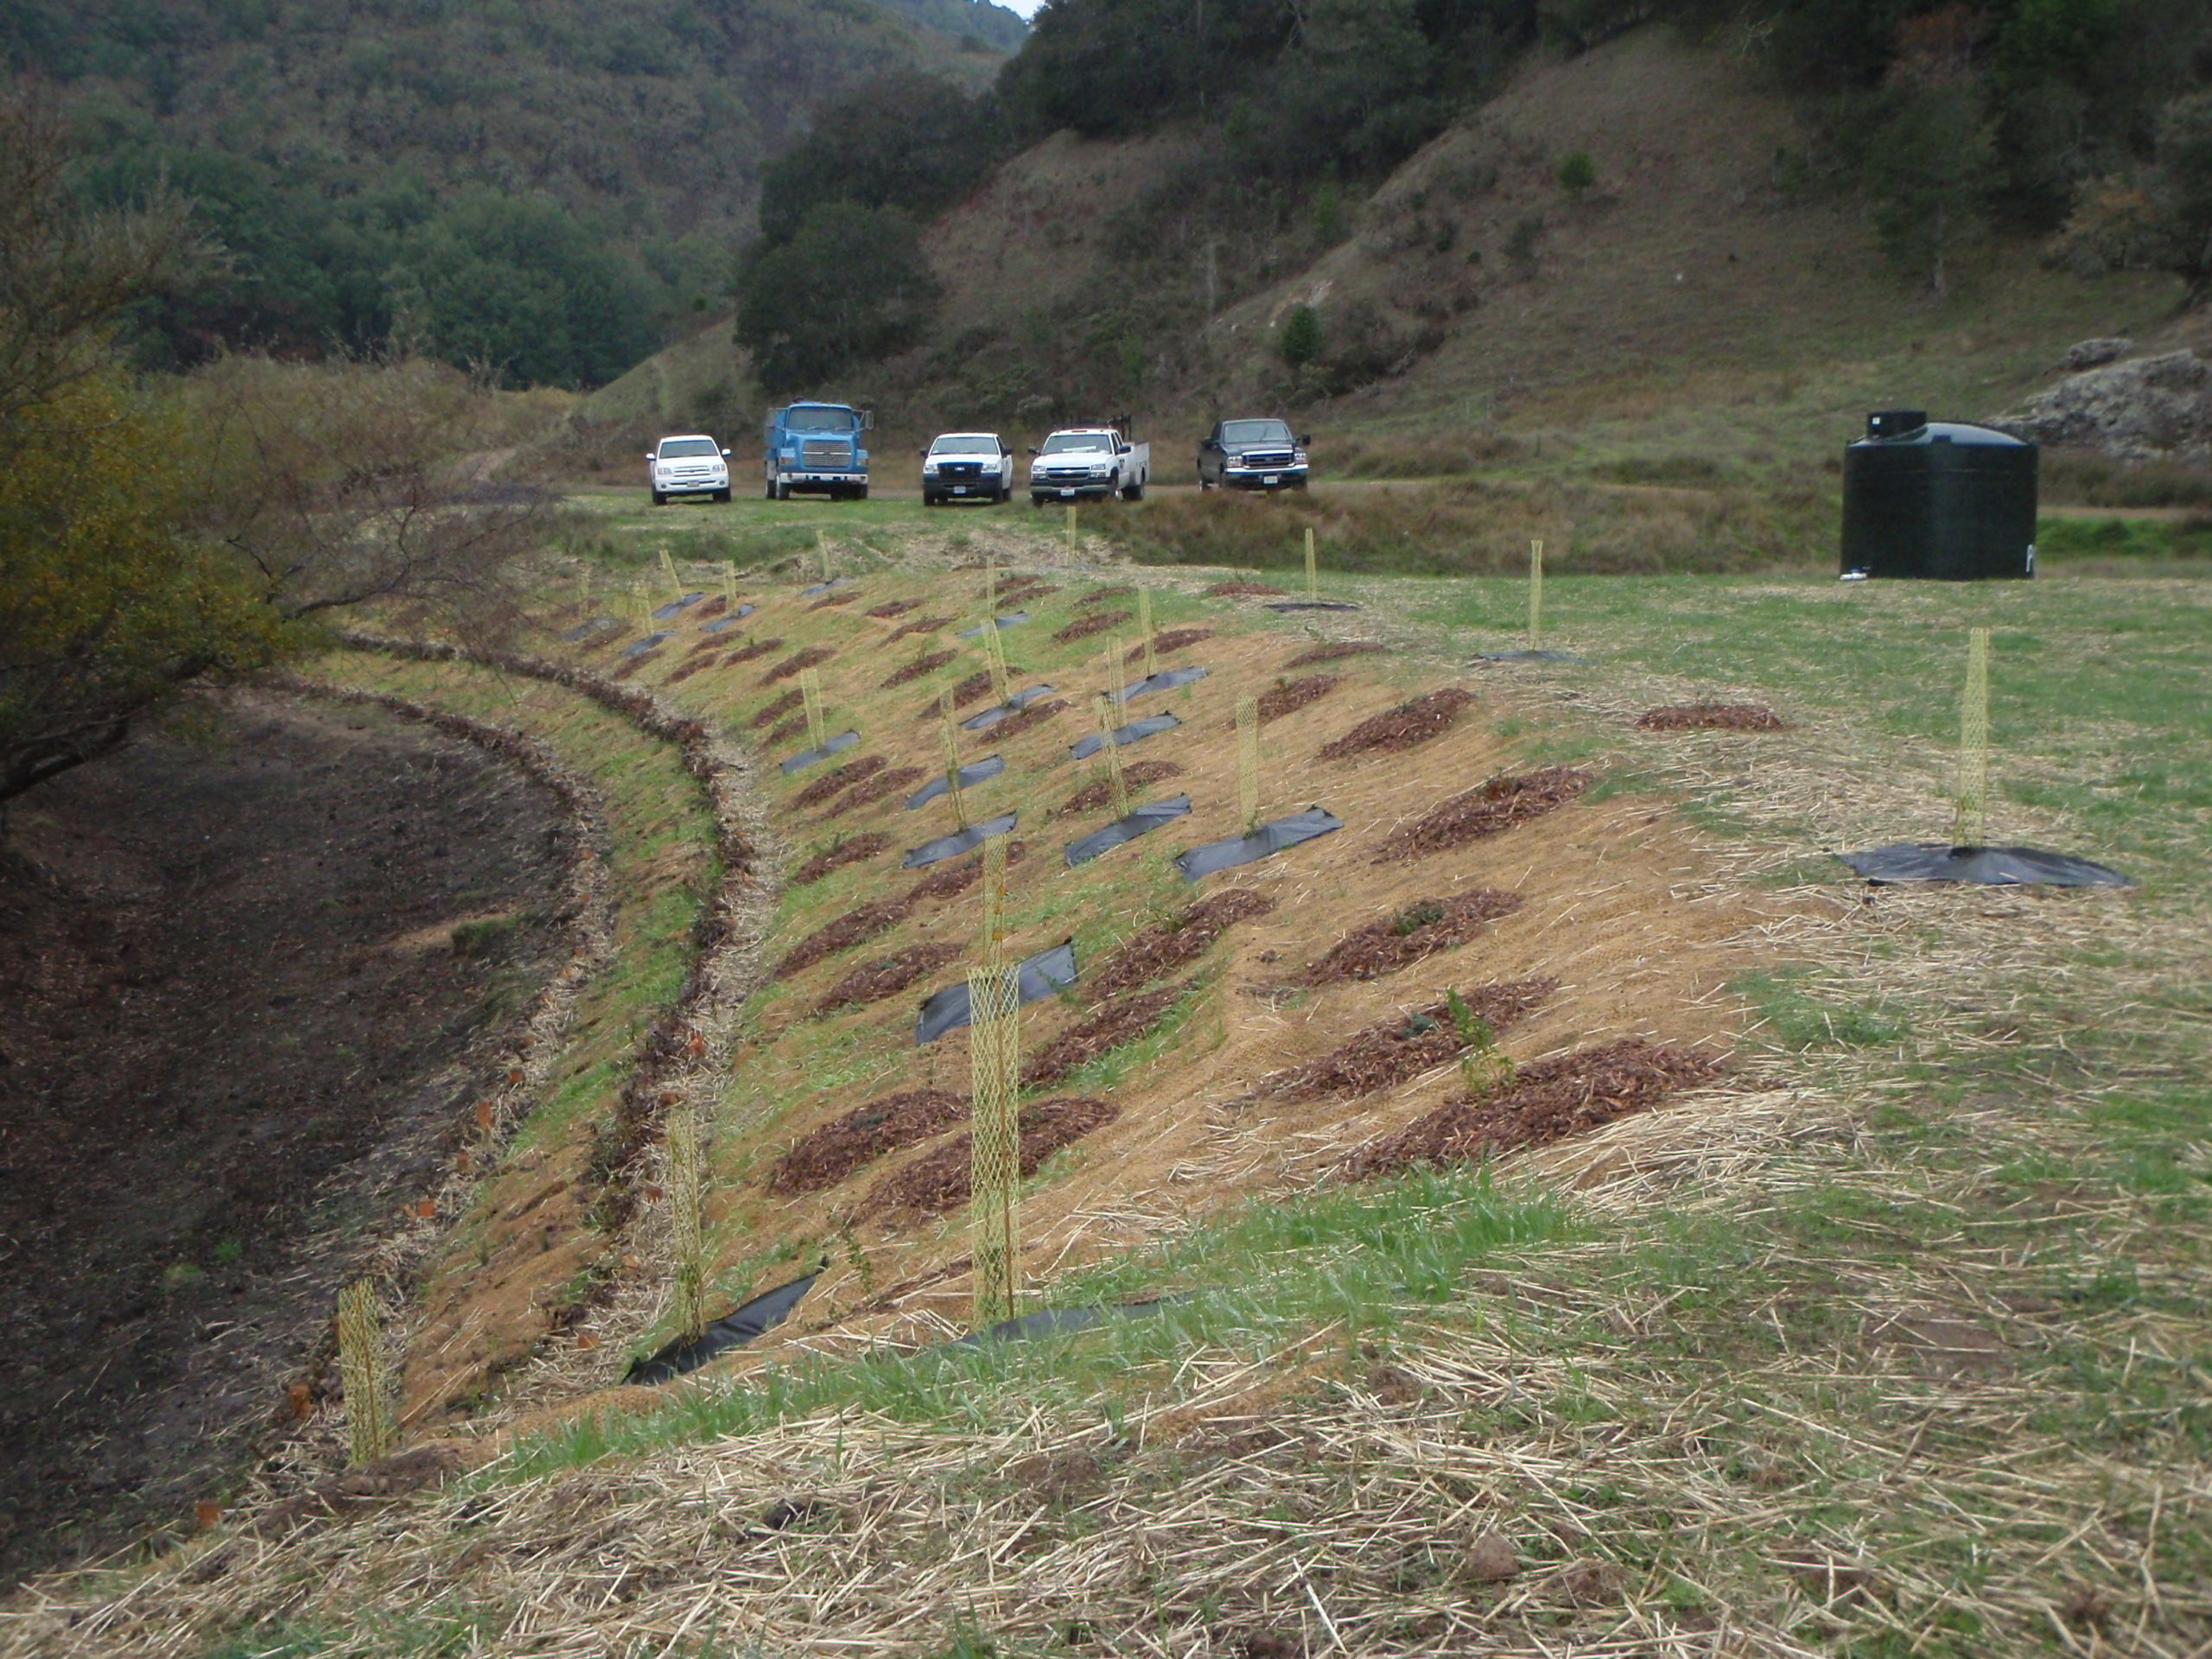 A side angle view of the bank shows an organized planting pattern with small plants installed. In the background are 5 trucks that look related to the planting operation.  Caption: Another view of the willow revetment constructed by Furlong Construction provides bank stability on a tributary to Soulajule Reservoir.